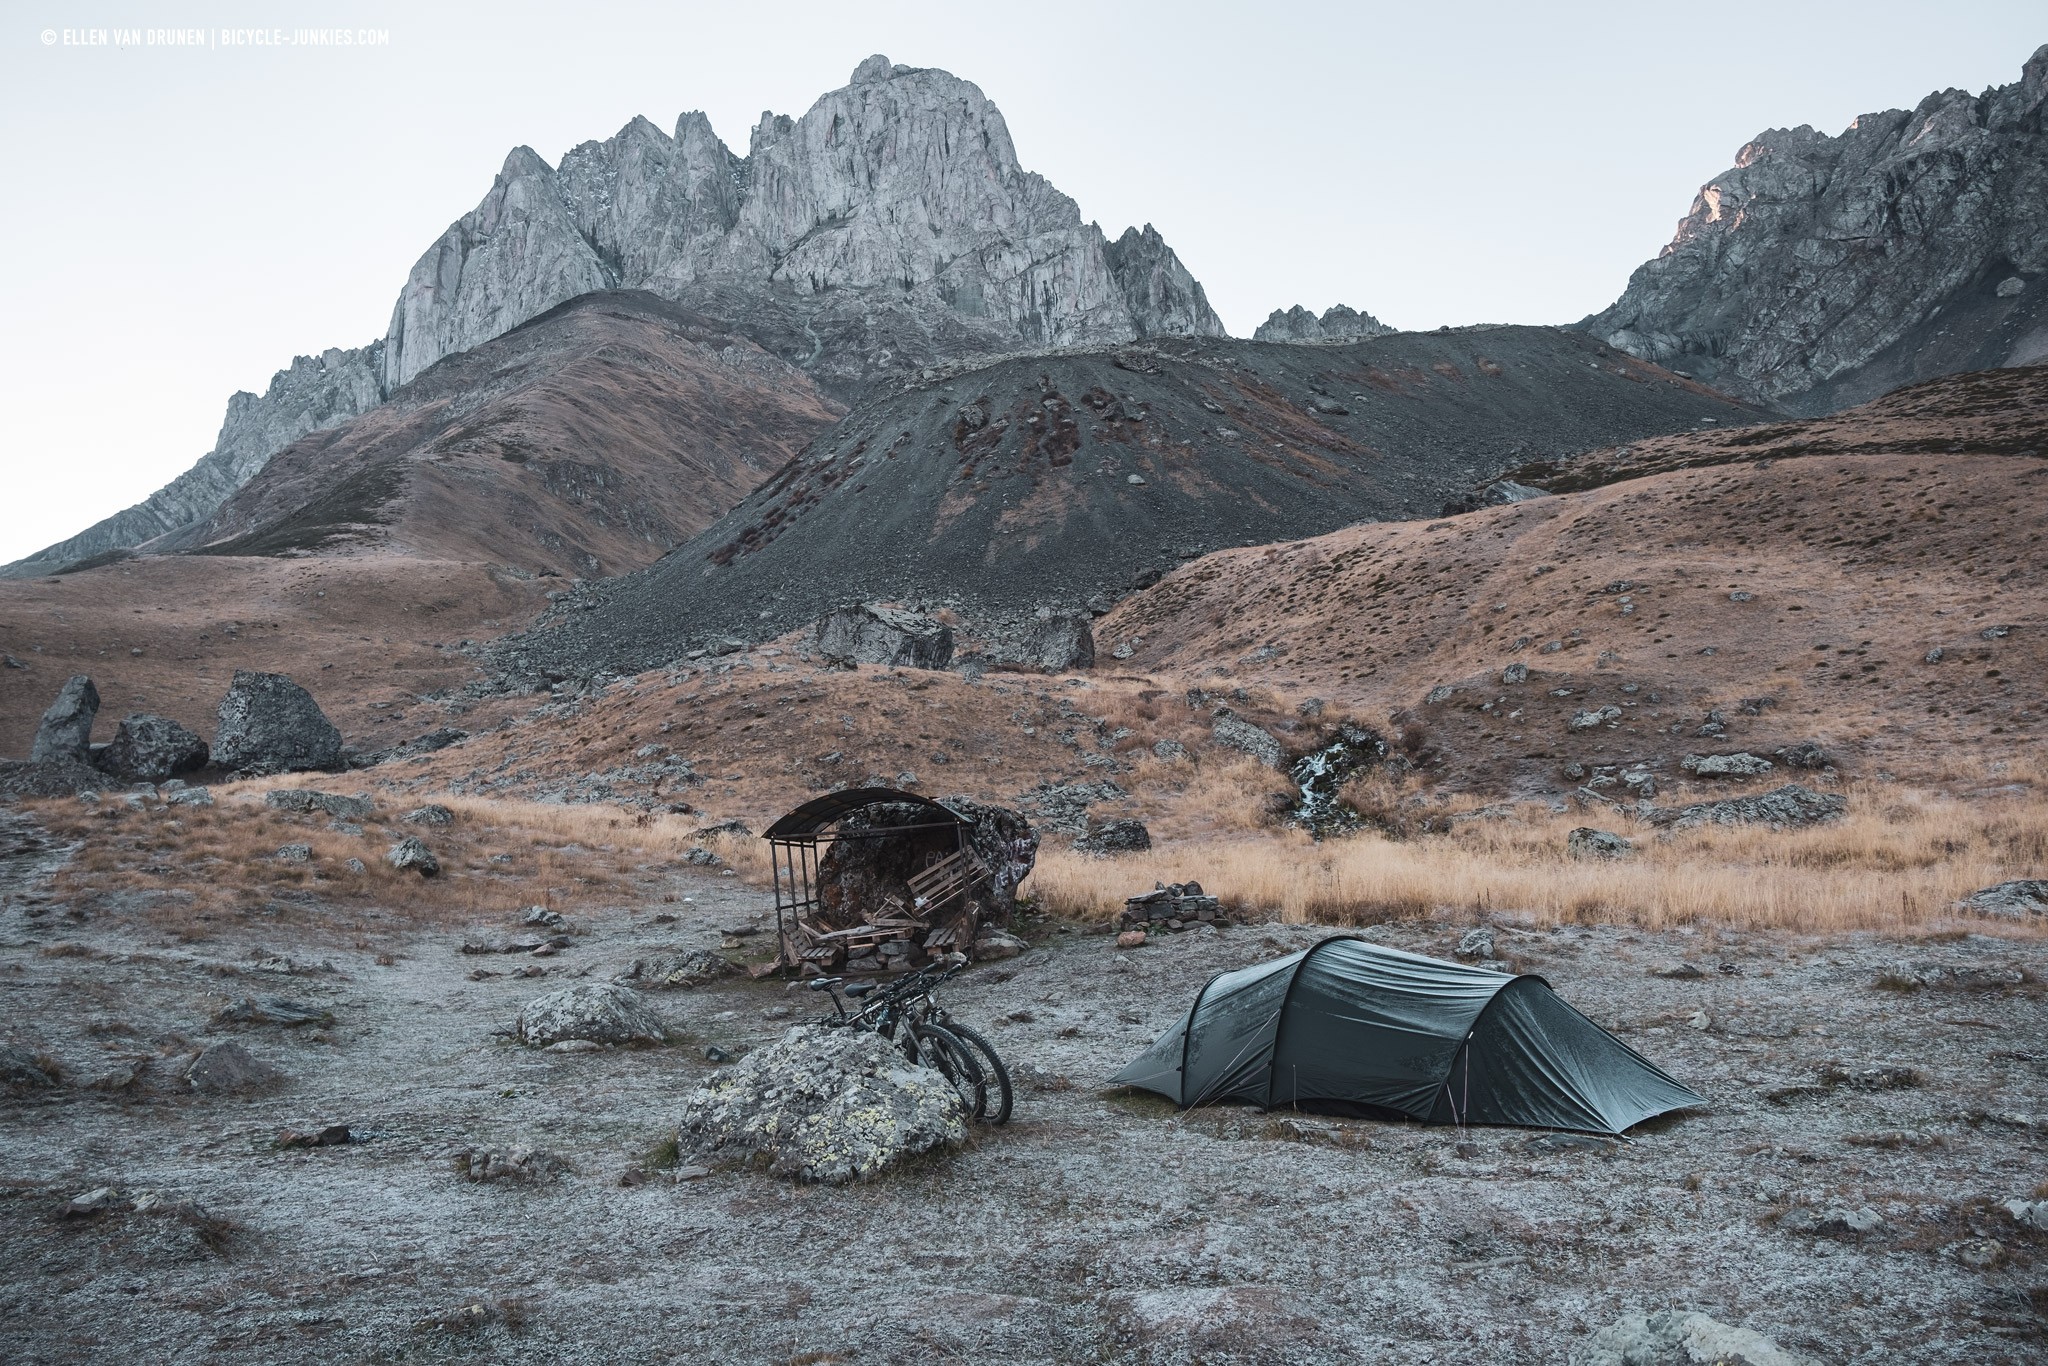 Camping at the bottom of the Chaukhi pass